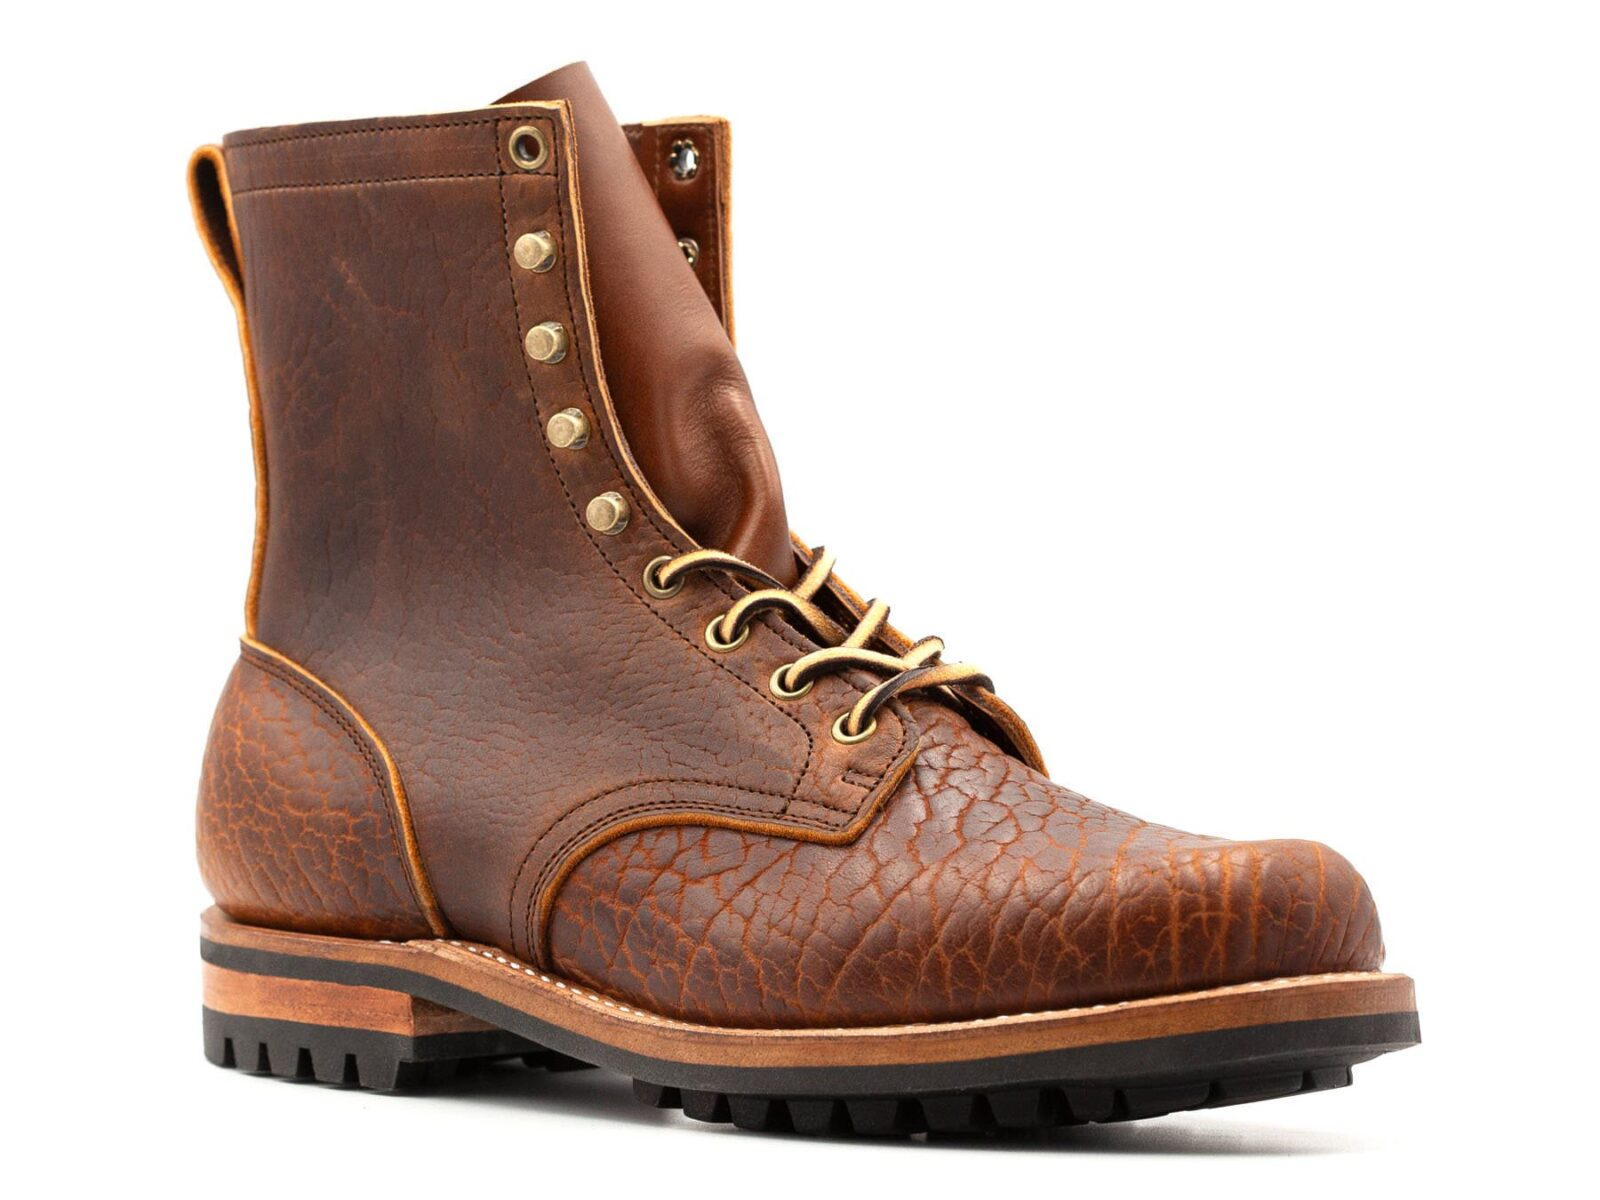 Bison Leather Boots